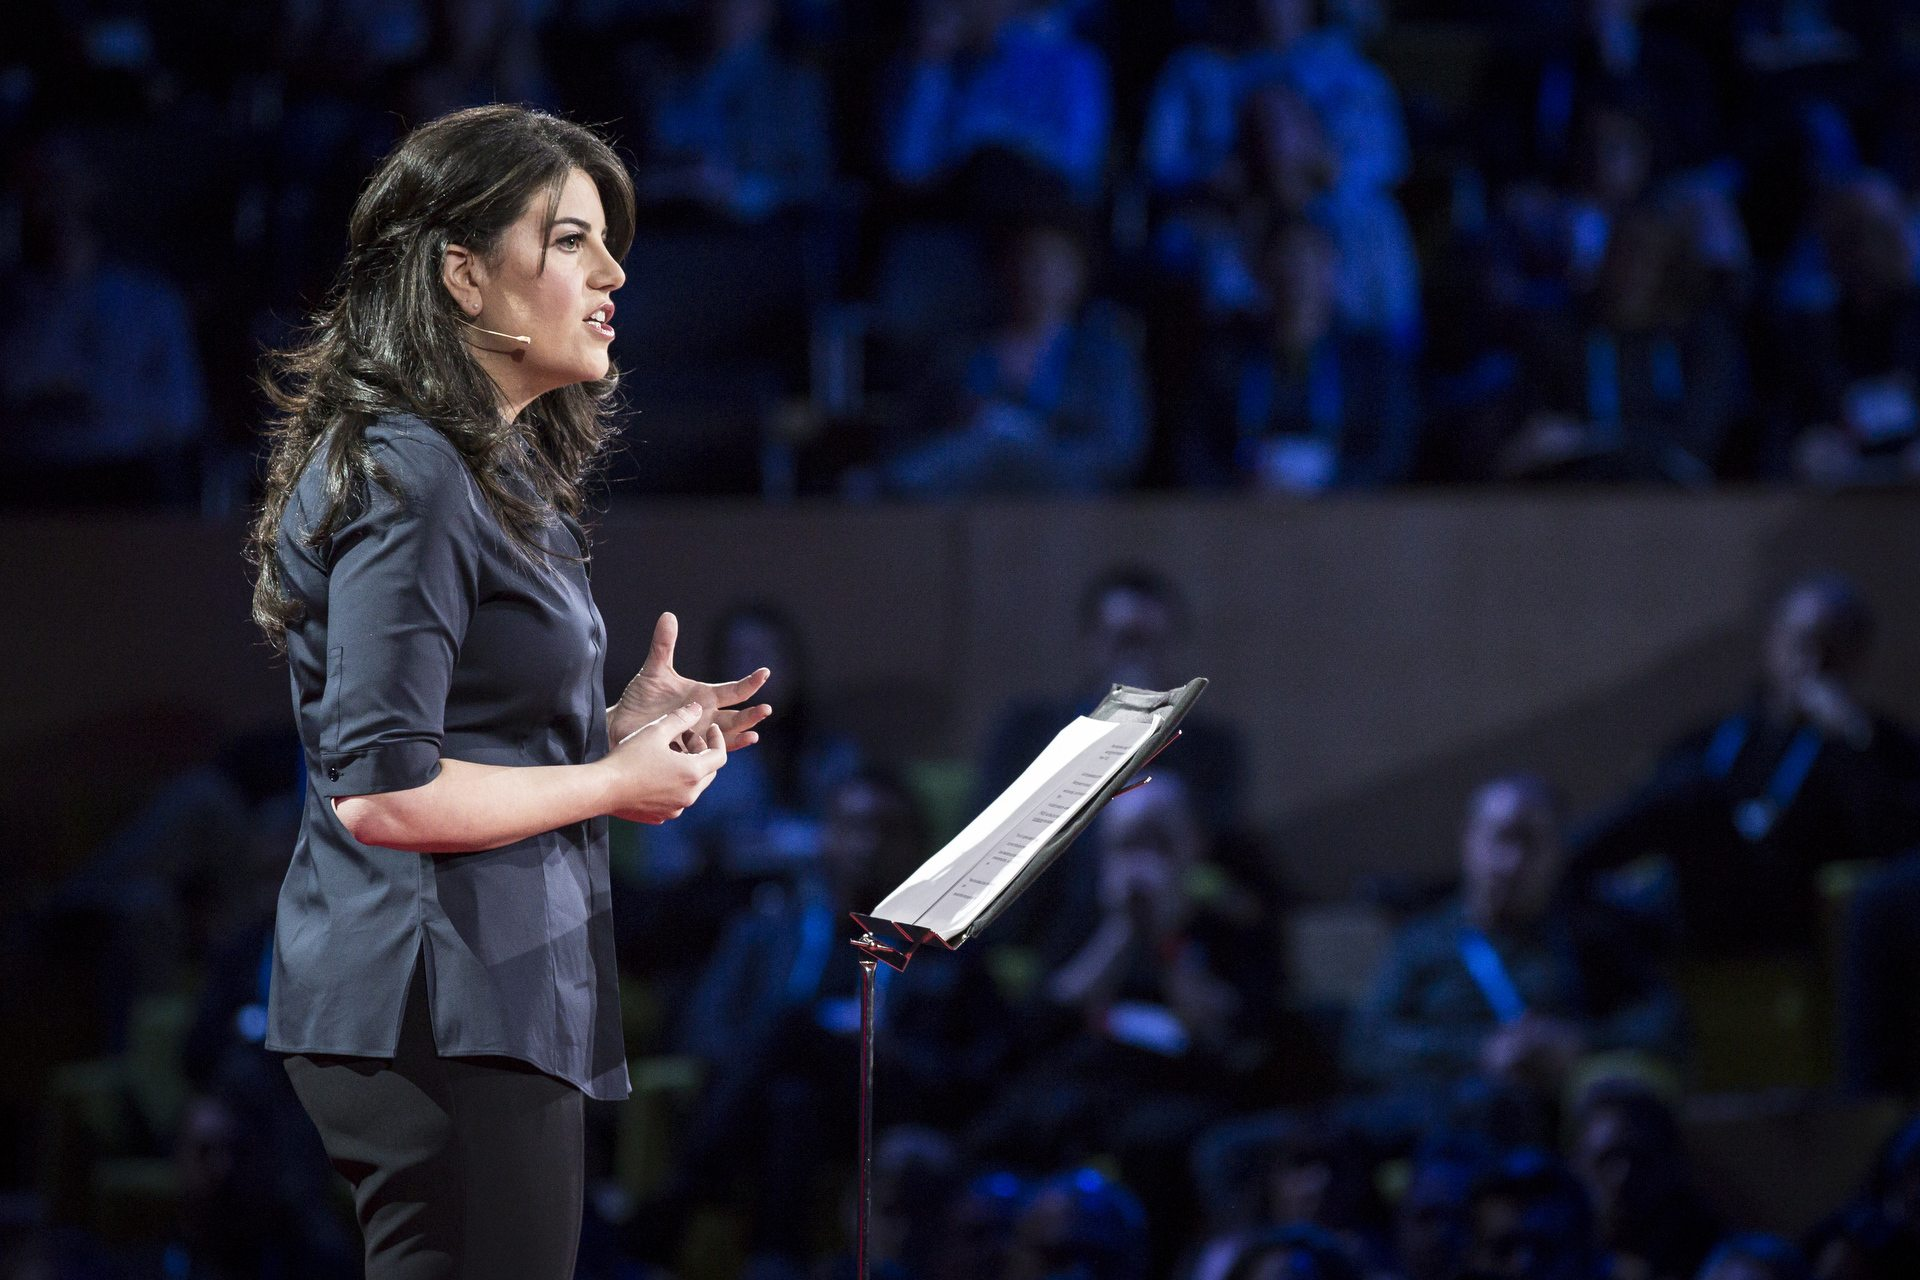 Image: Monica Lewinsky speaking at TED